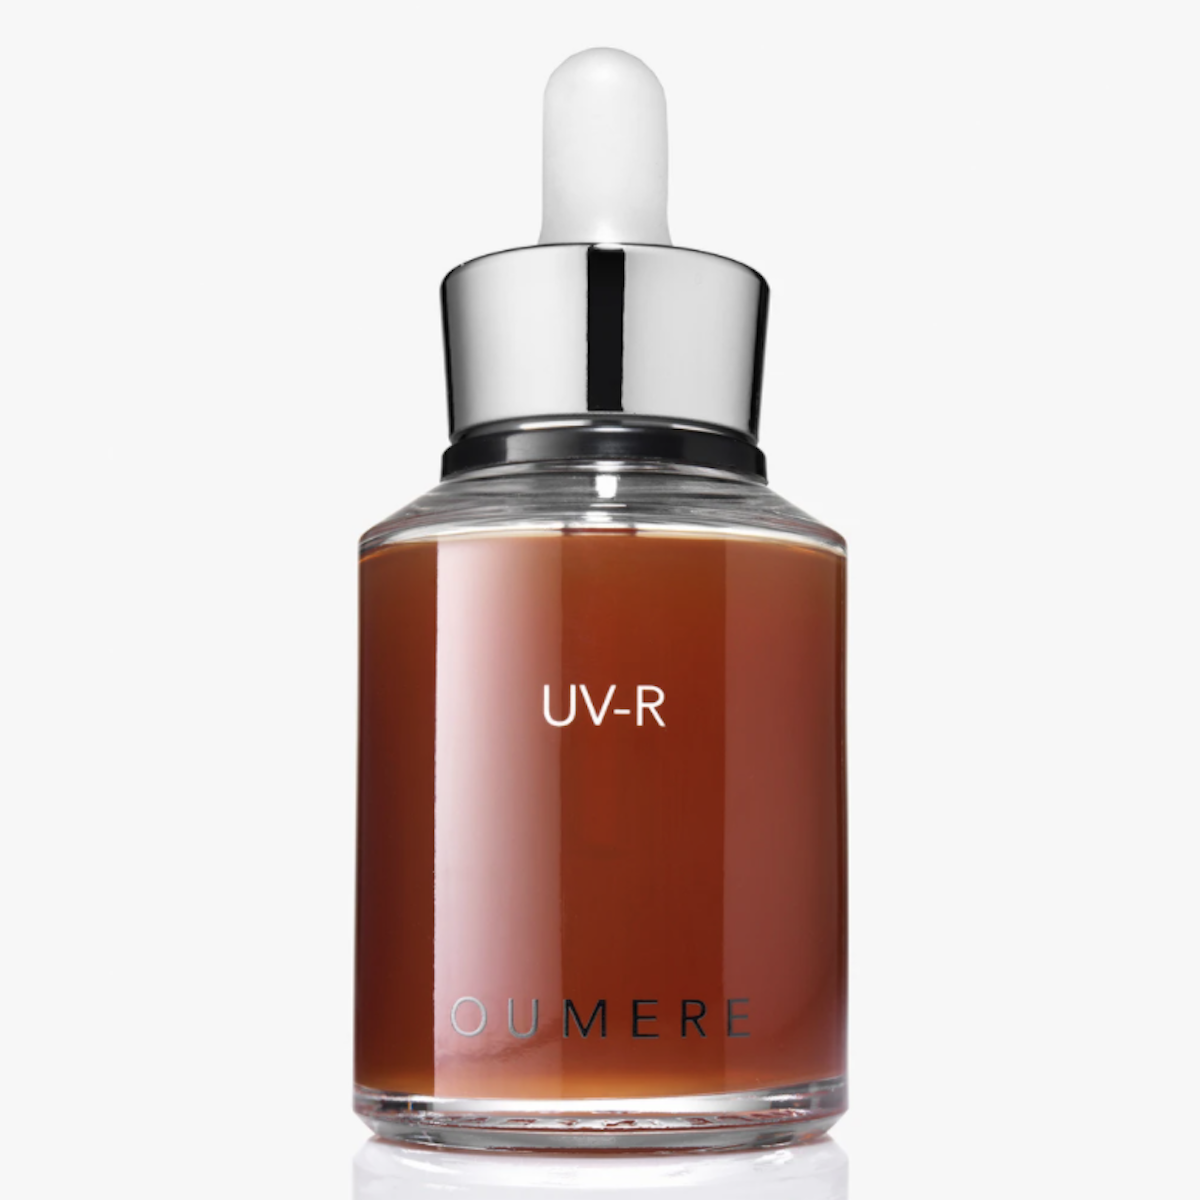 Oumere UV-R serum in glass bottle